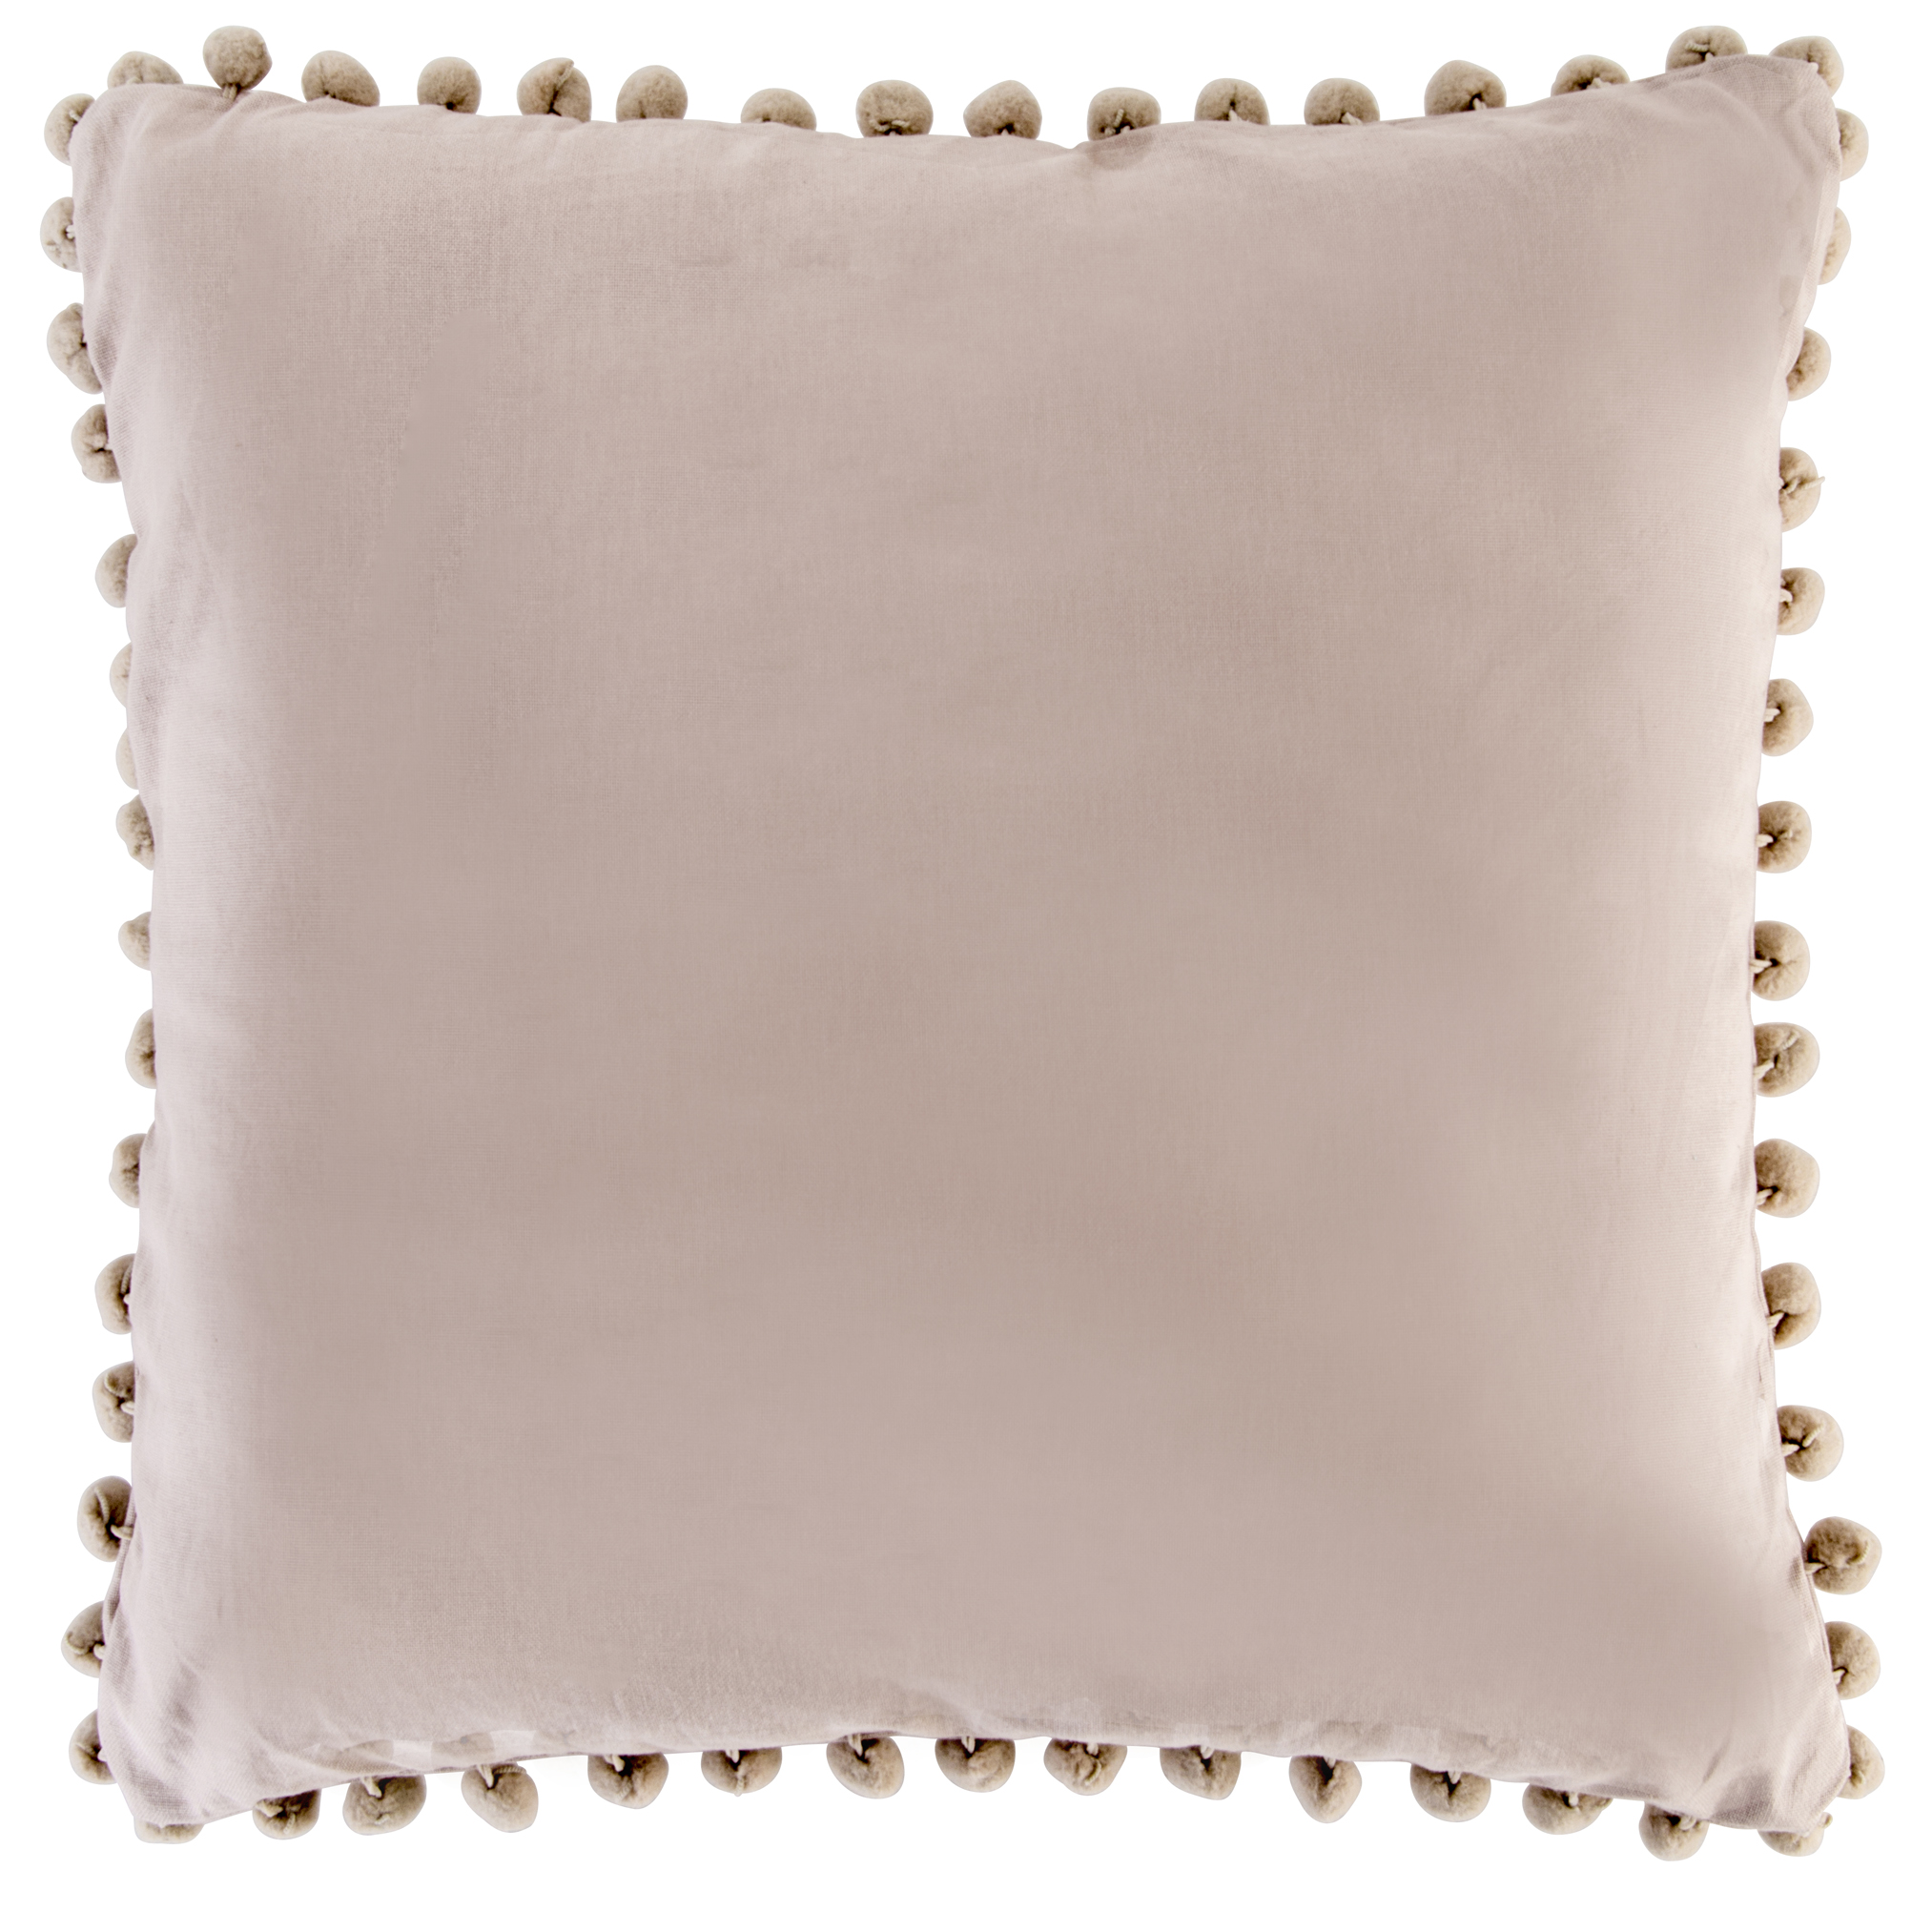 Bobby taupe cushion with pom pom trim